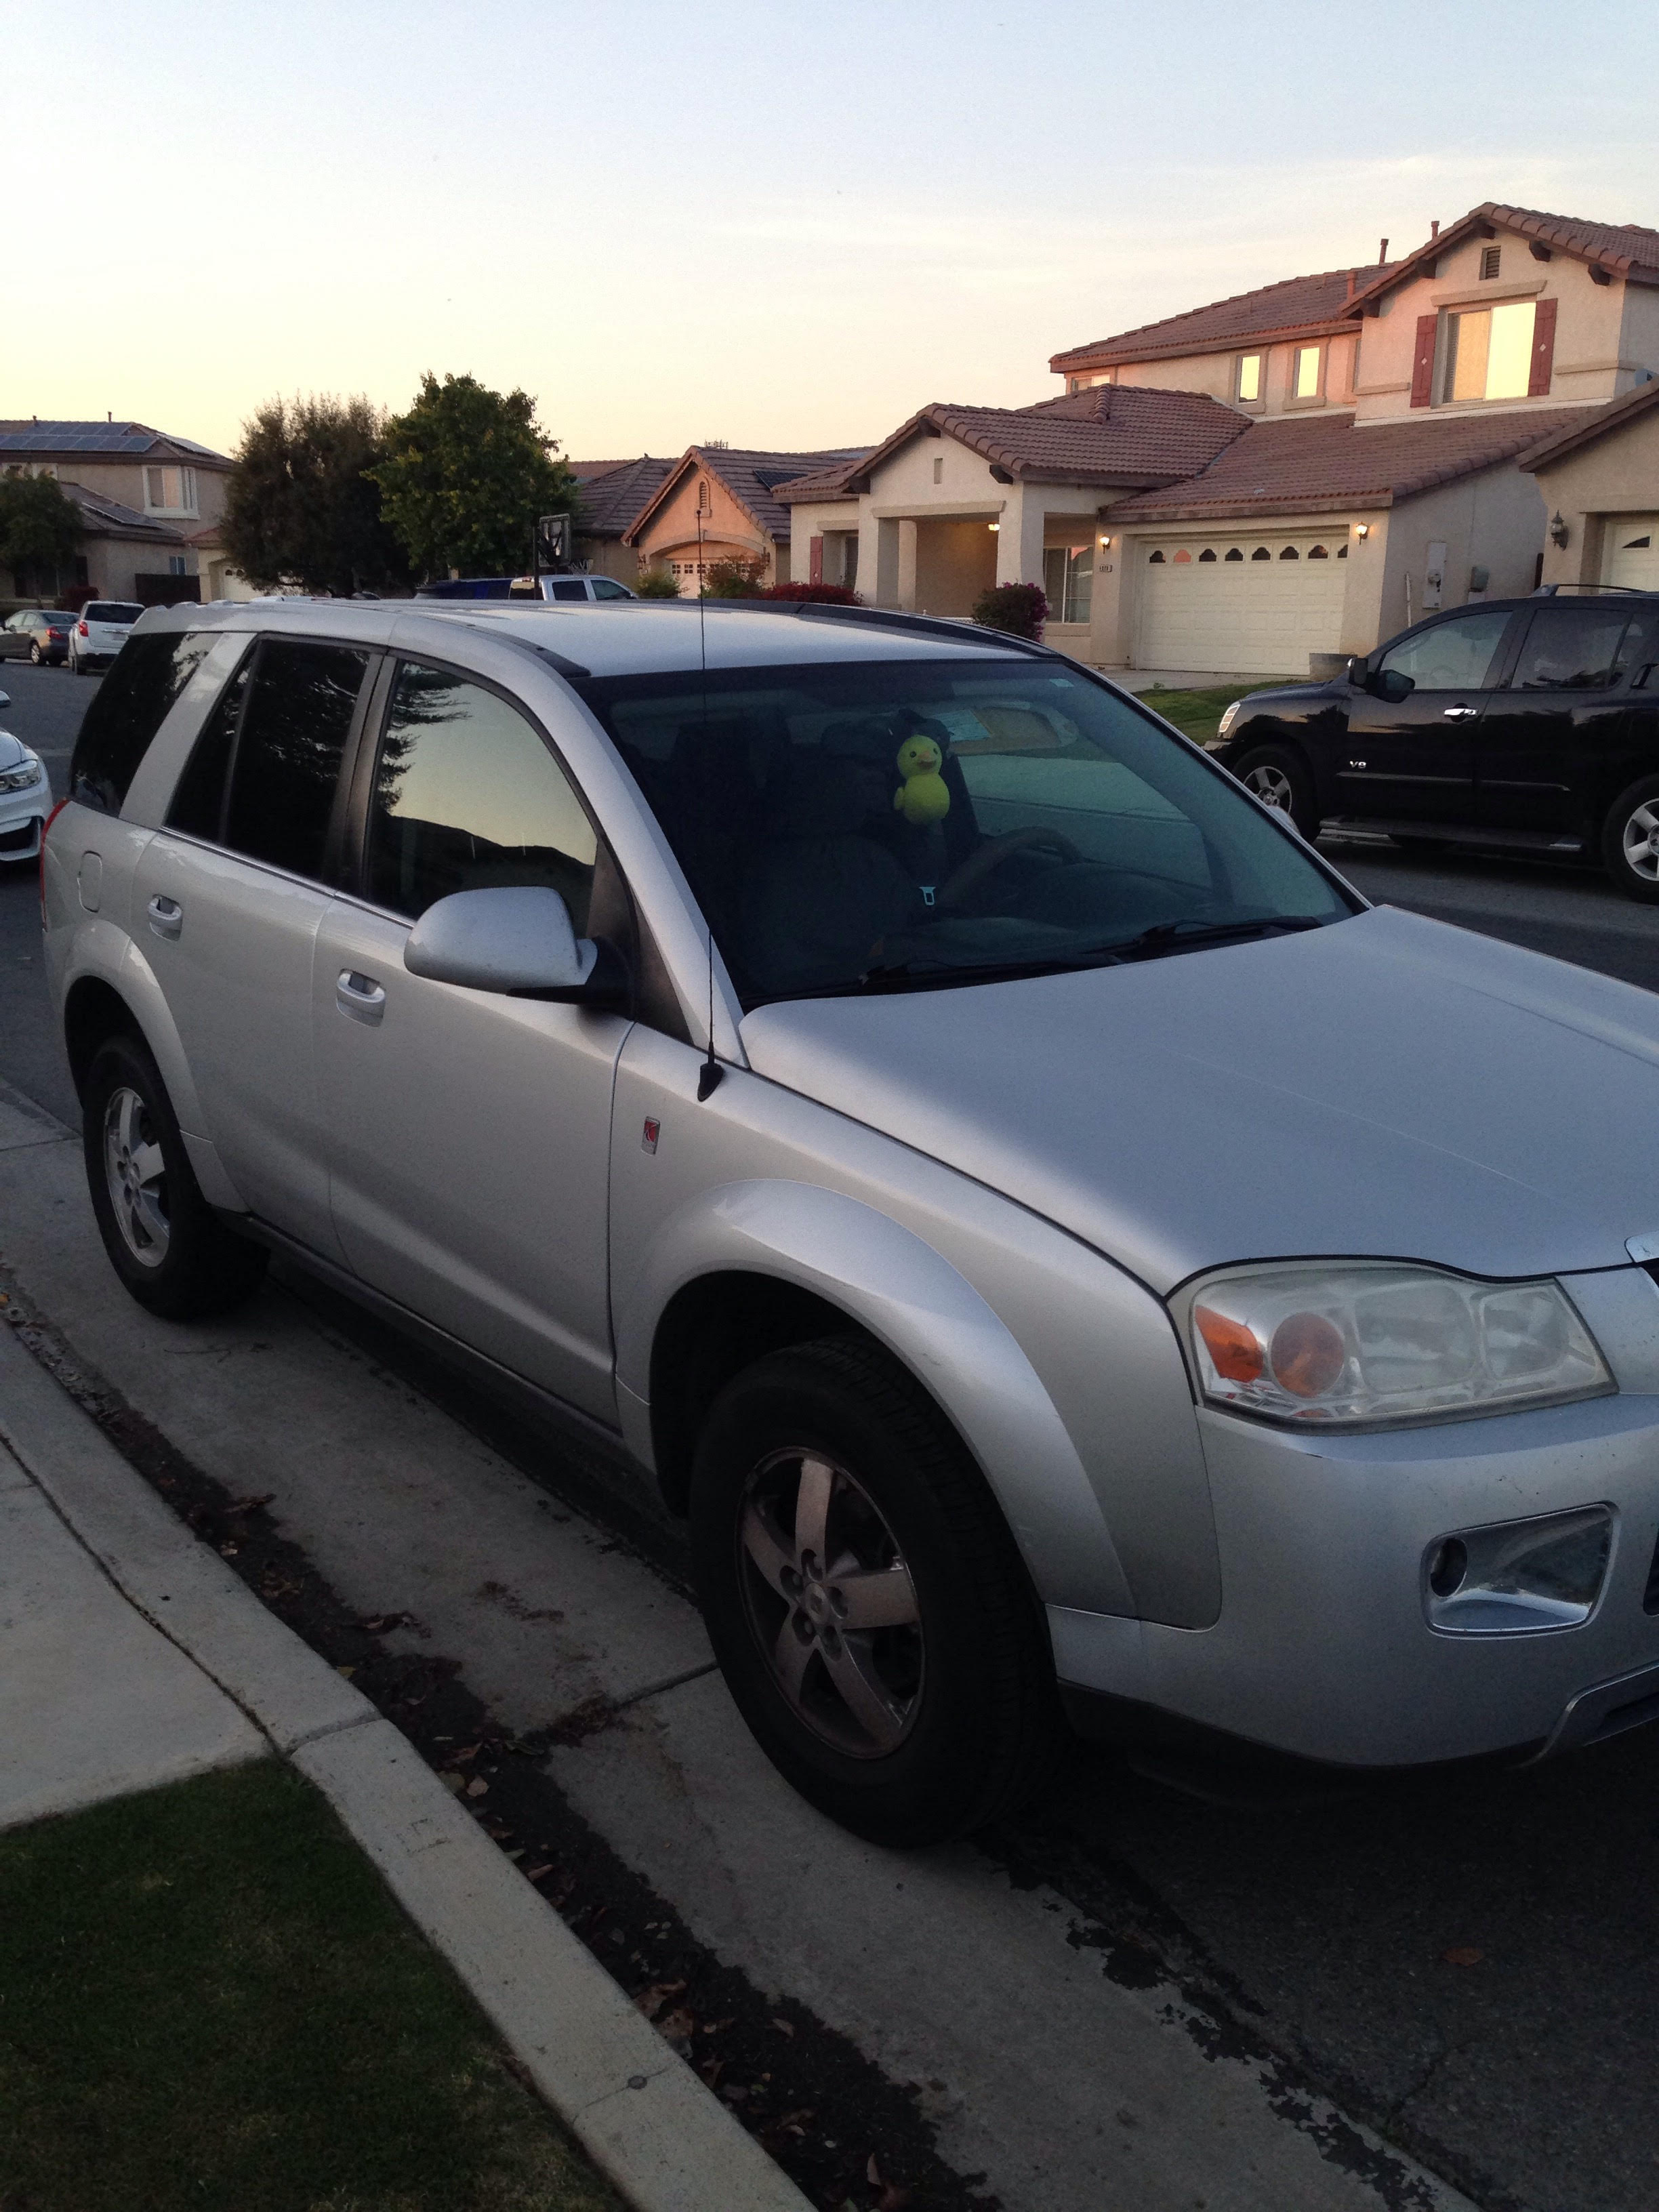 Went to a lot of client appointments with this car. a rusty old hand-me-down saturn vue.